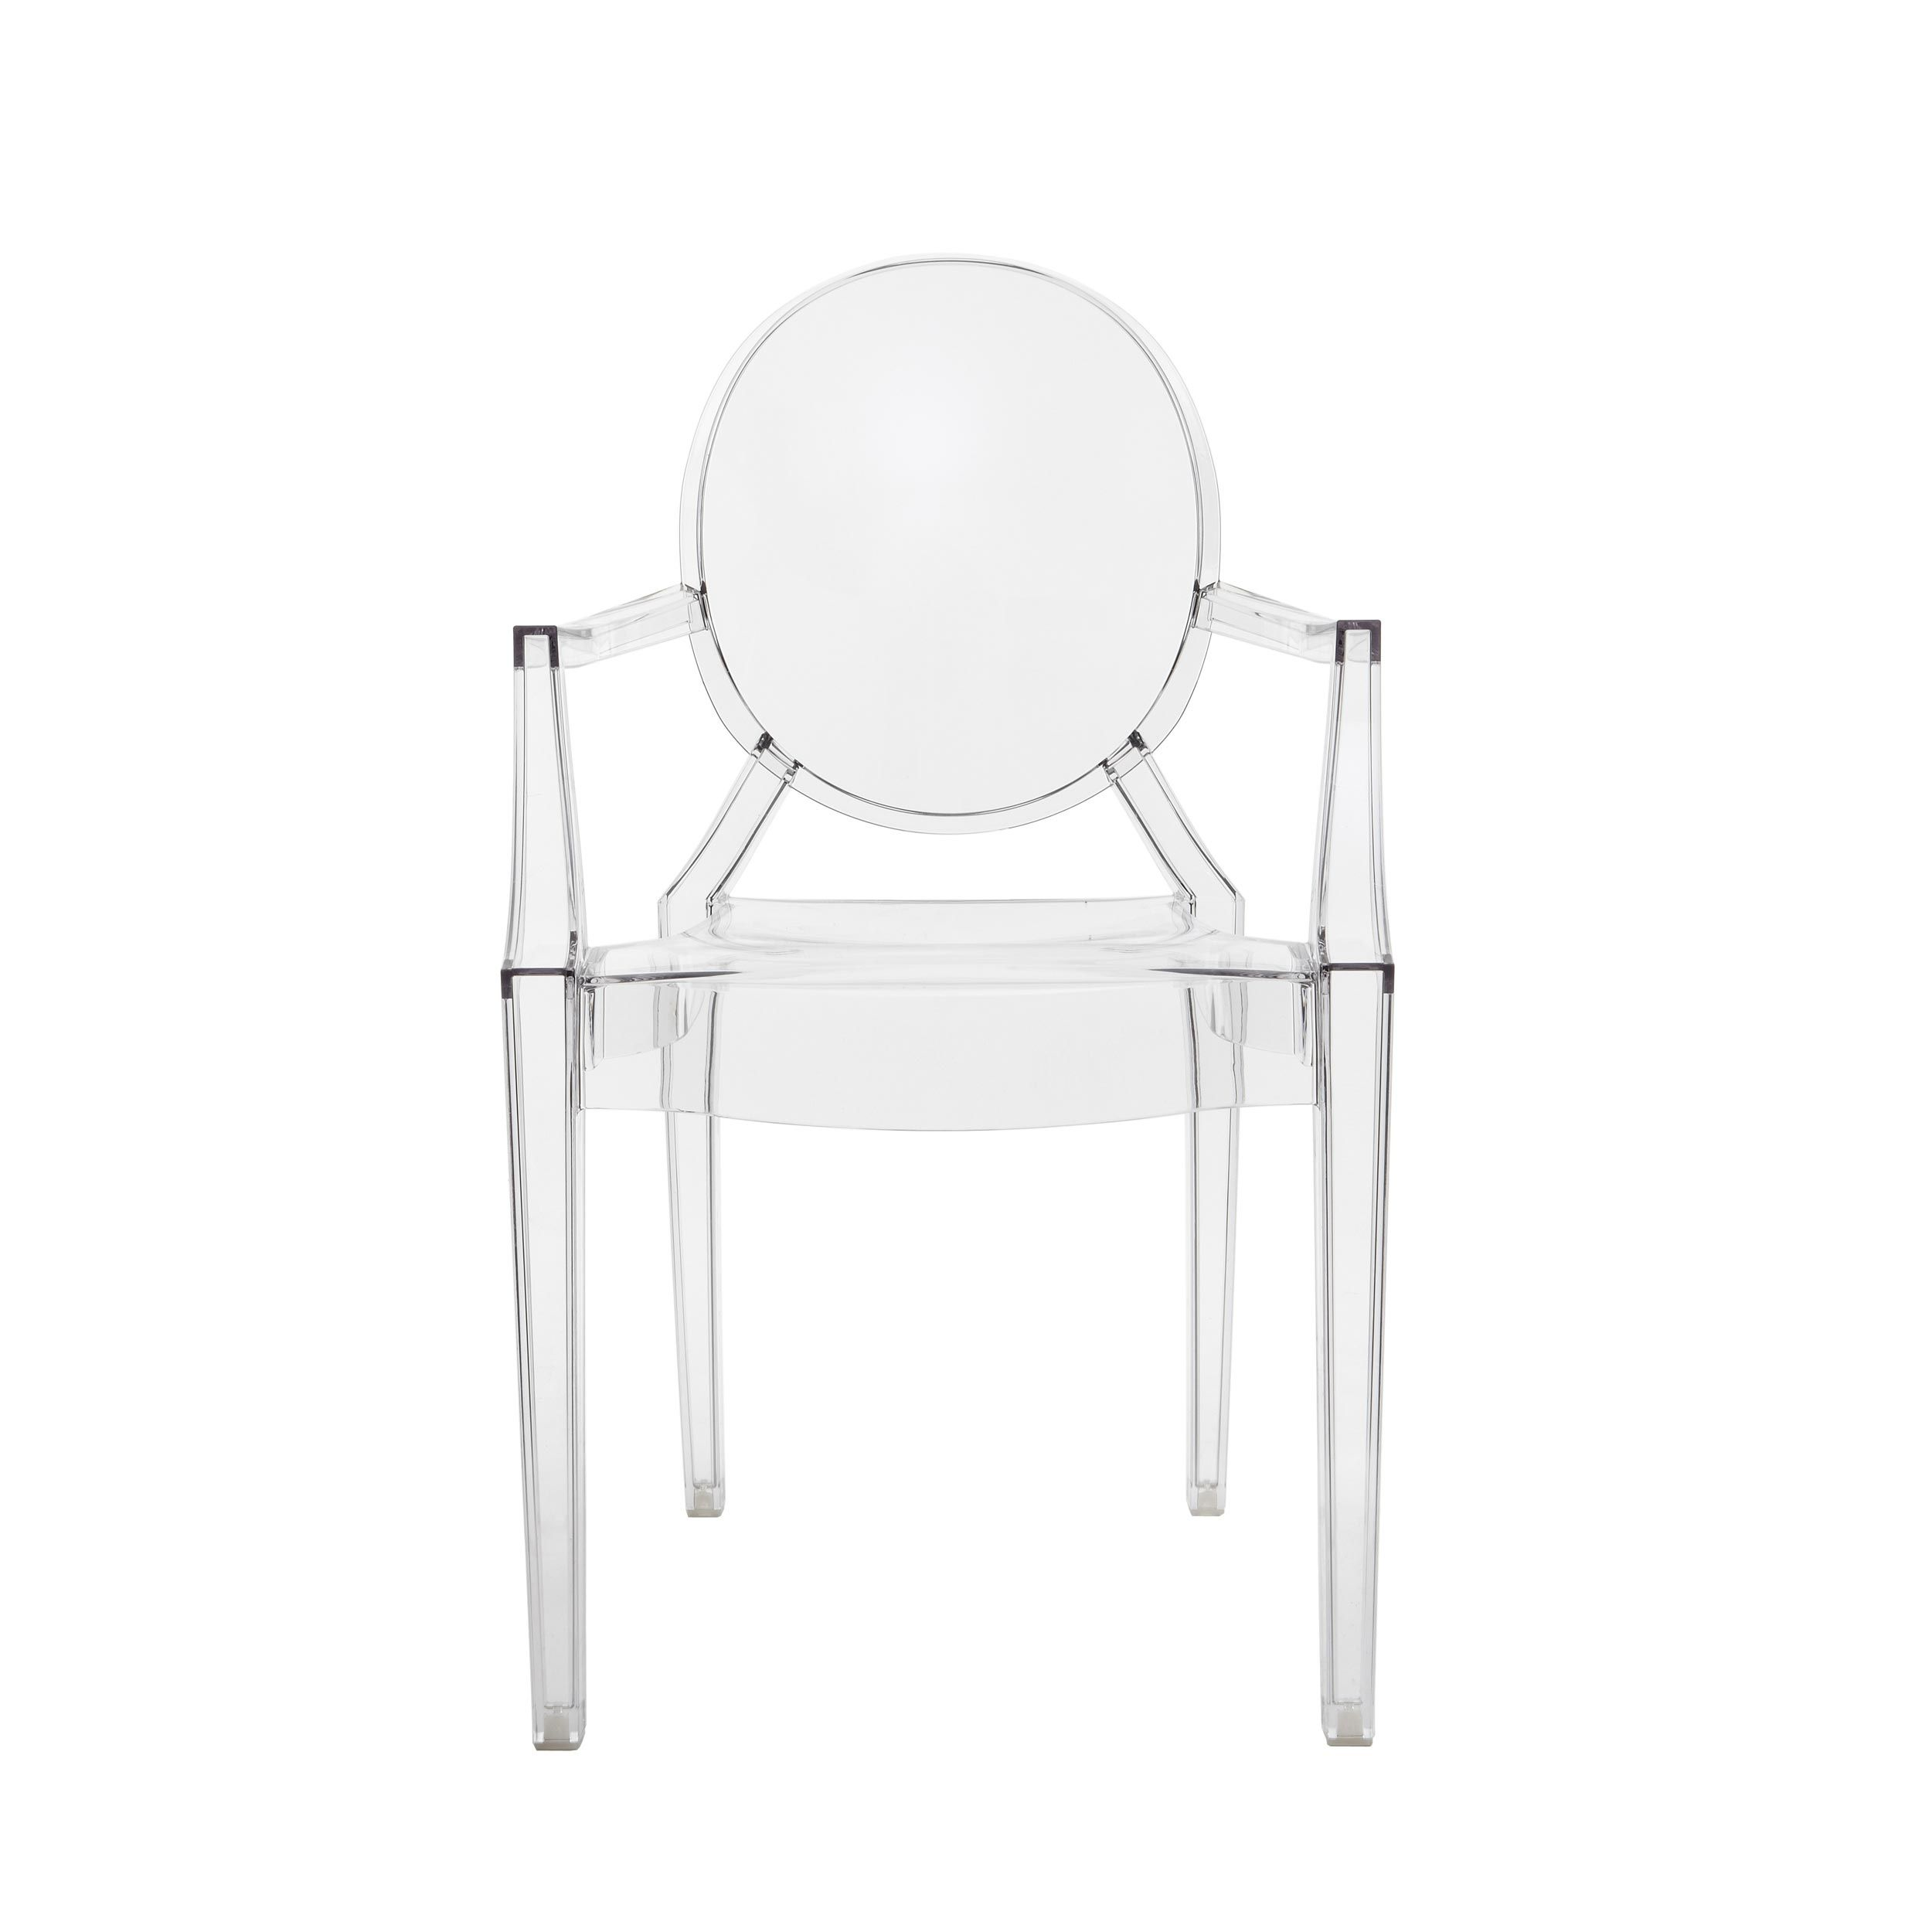 Transparent polycarbonate chair mod. Louis Ghost, Kartell. // Silla ...